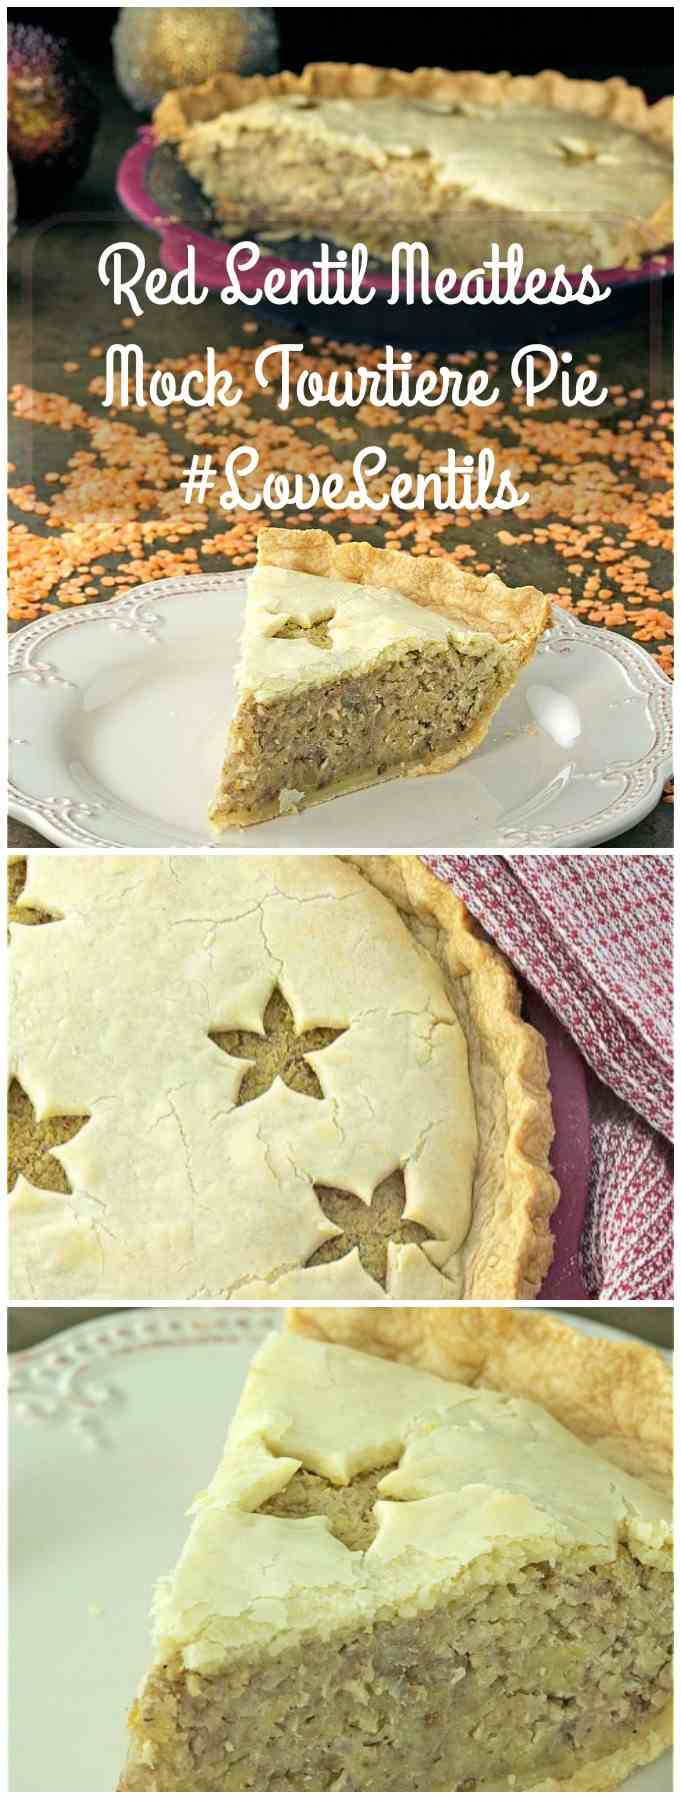 Red Lentil Meatless Mock Tourtiere Pie long pin image.